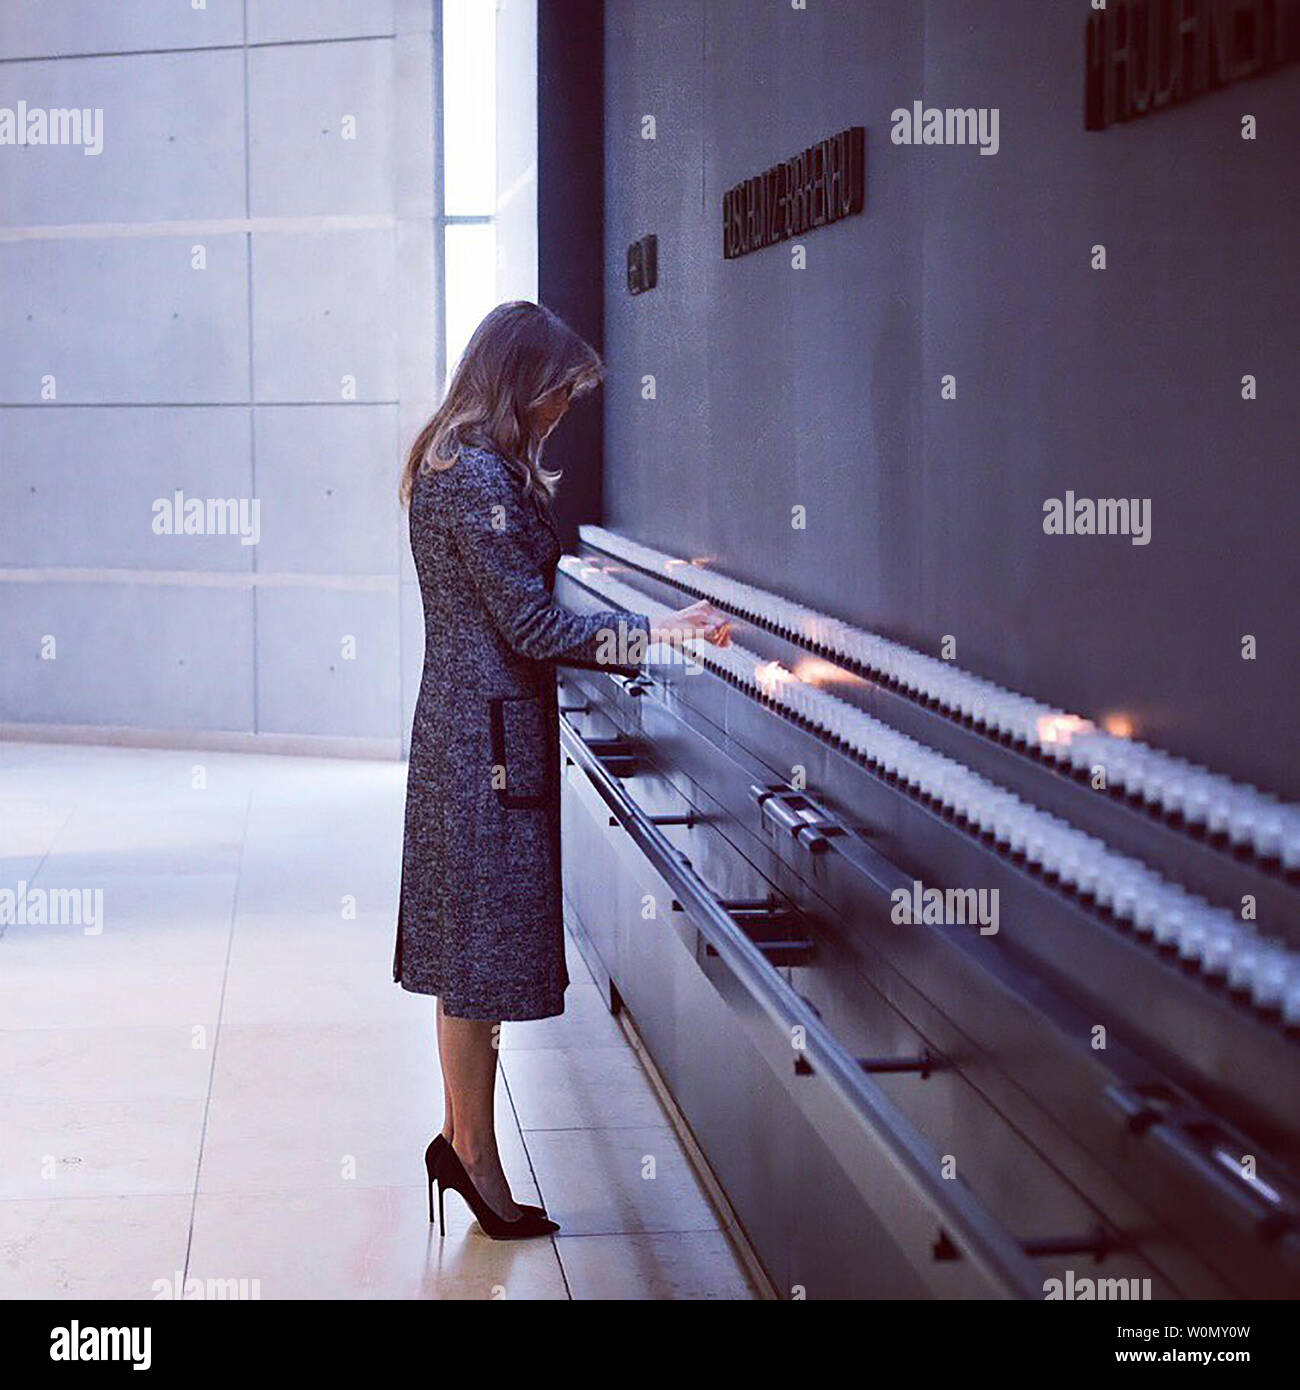 """First Lady Melania Trump is pictured visiting the Holocaust Museum in Washington, D.C., on January 25, 2018. Accompanying the photographs she posted on Twitter, the president's wife wrote, """"Thank you @HolocaustMuseum for a powerful & moving tour that honors the millions of innocent lives lost, and educates us on the tragedies and effects of the holocaust.  Photo via FLOTUS/Twitter Stock Photo"""